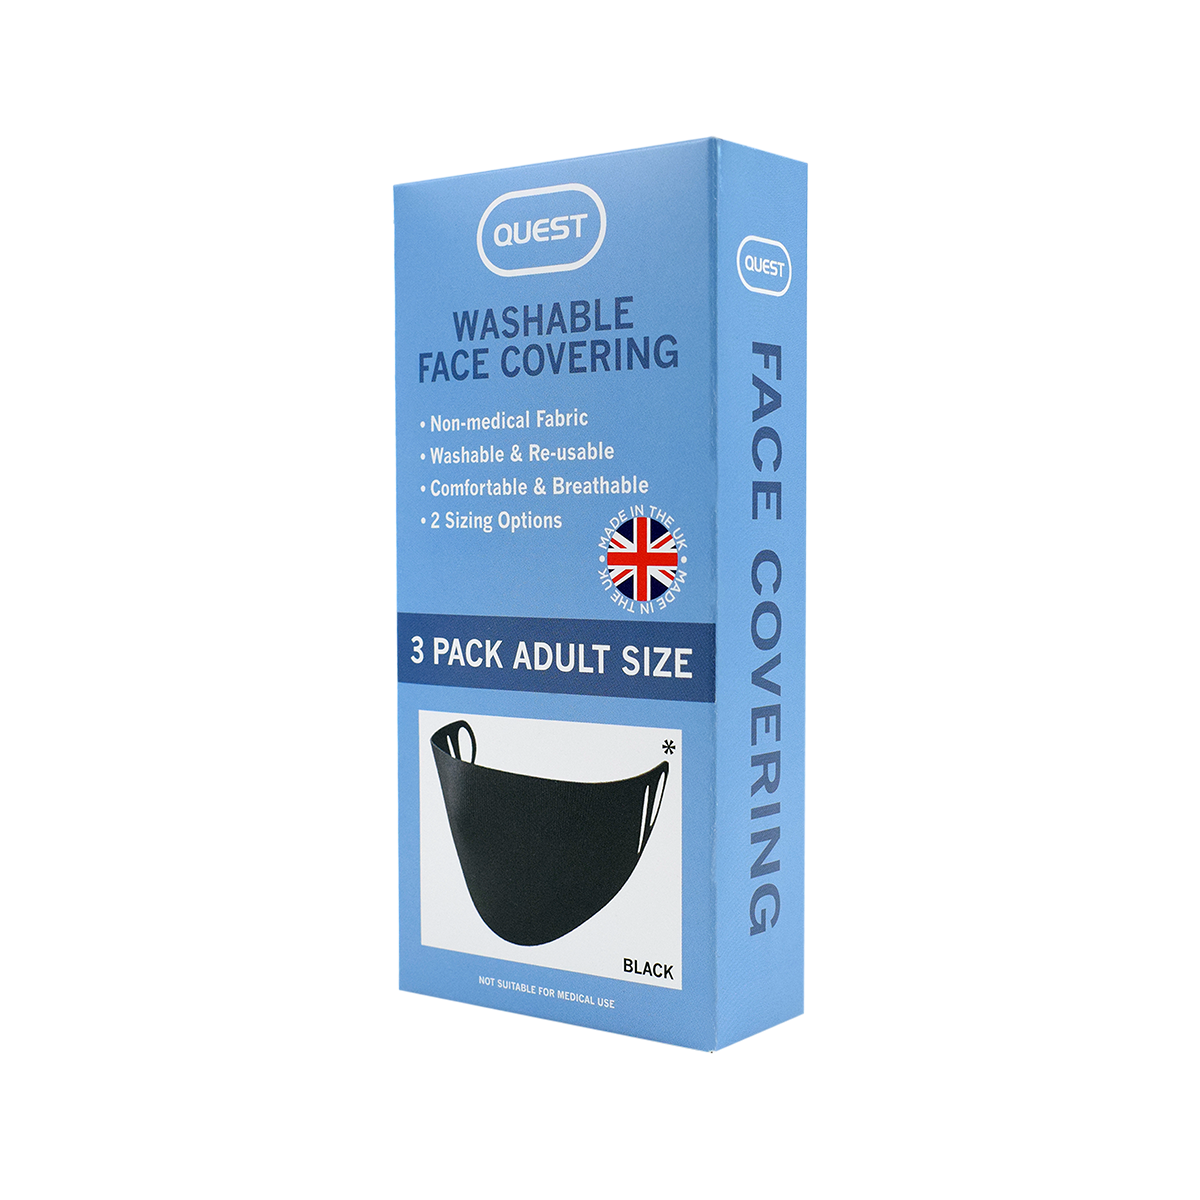 Quest Adult Face Covering - 3 Pack